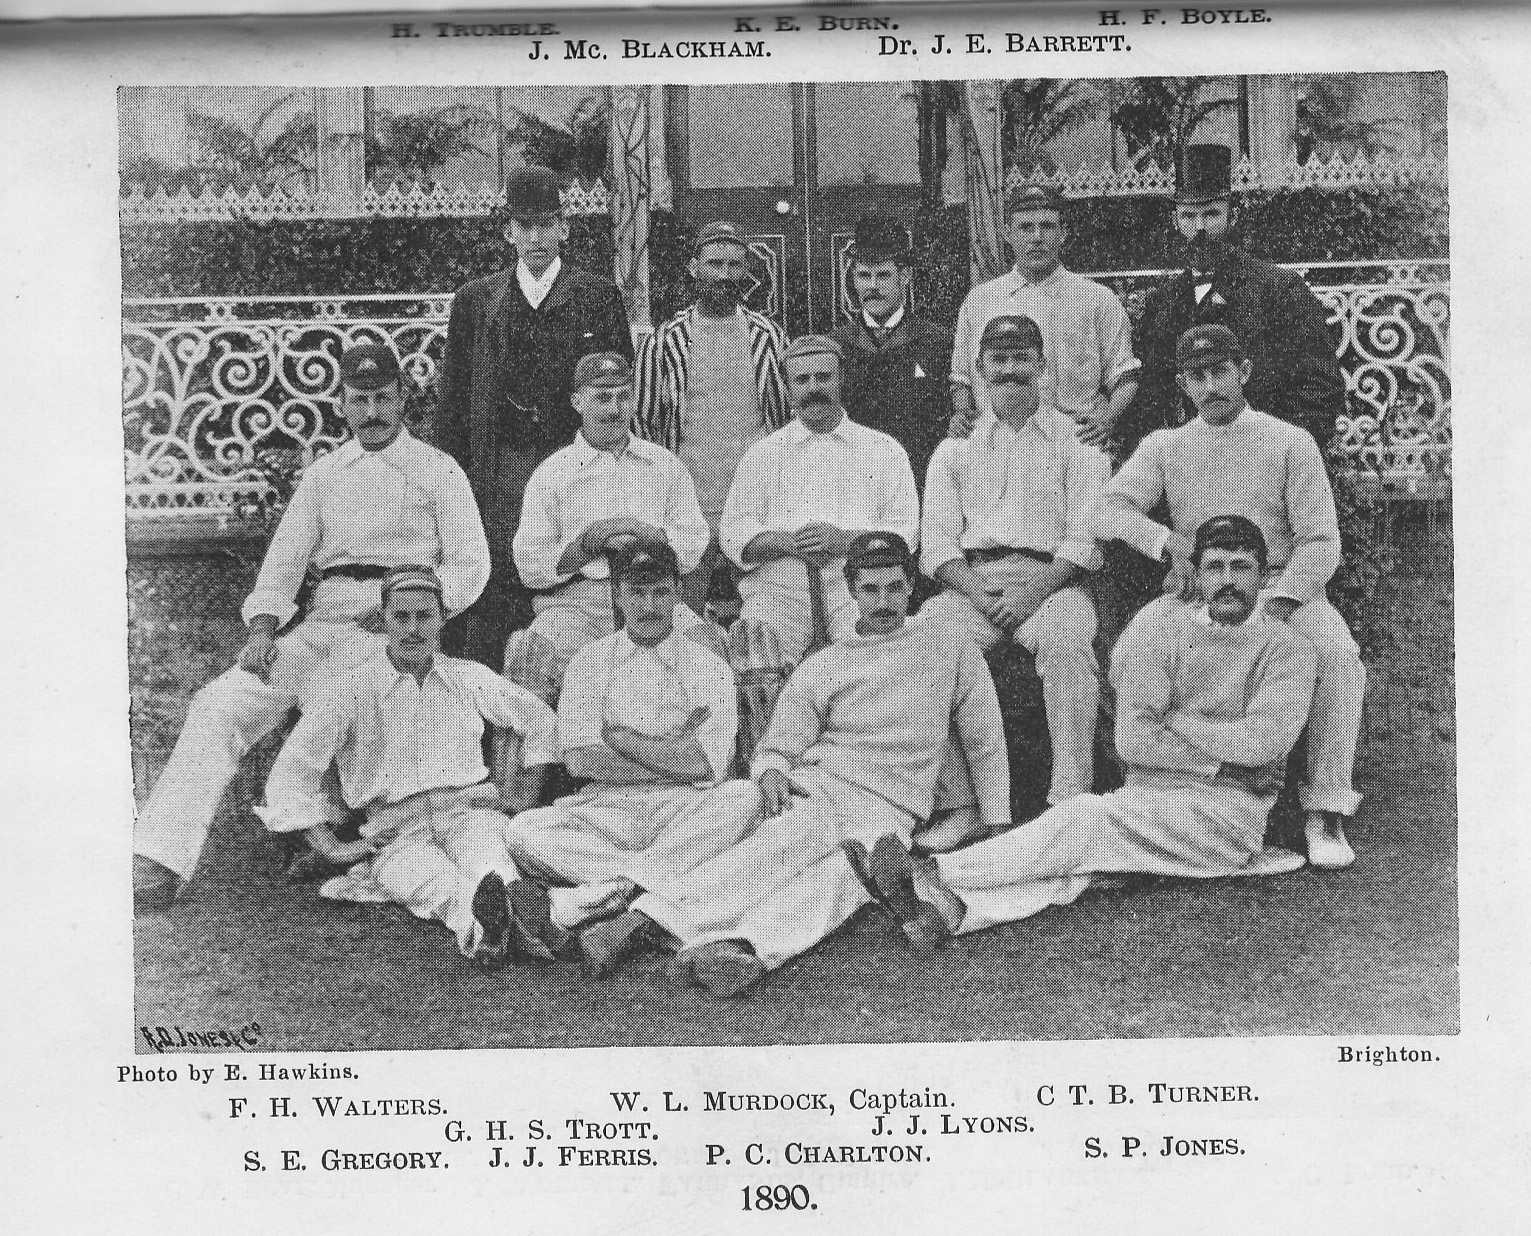 The 1890 Australian Cricket Team.